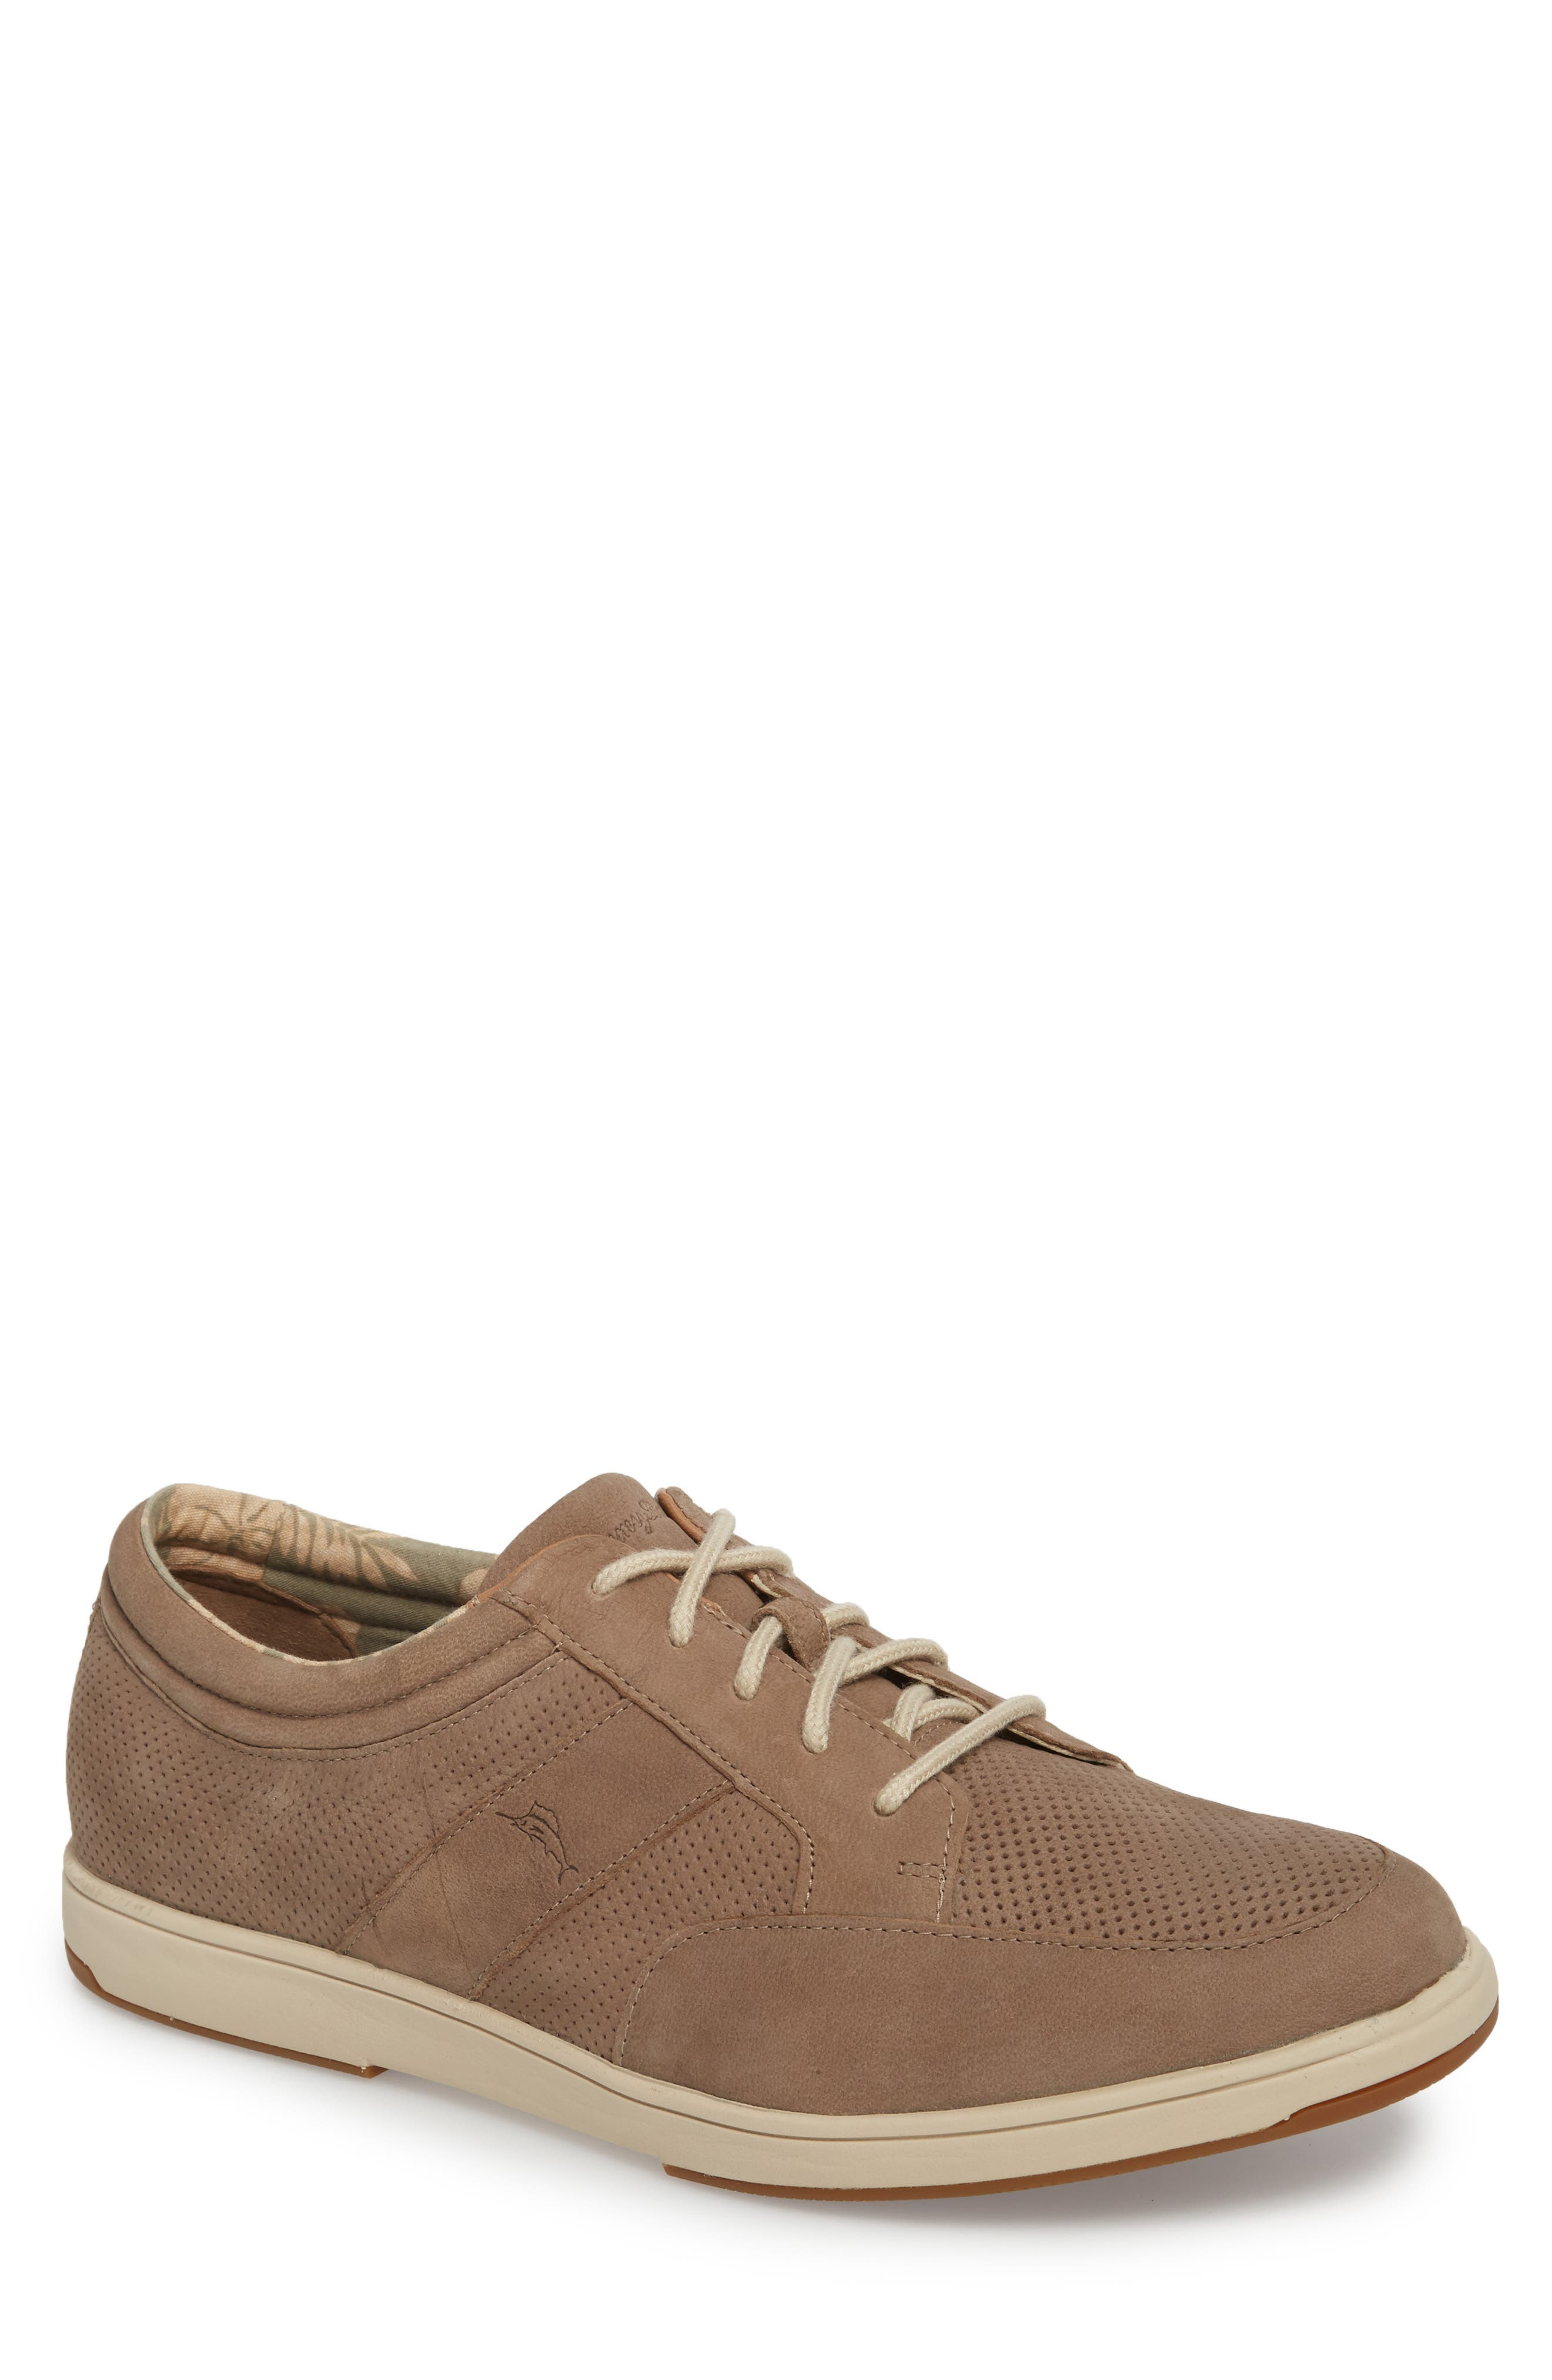 Caicos Authentic Low Top Sneaker,                         Main,                         color, Taupe Leather